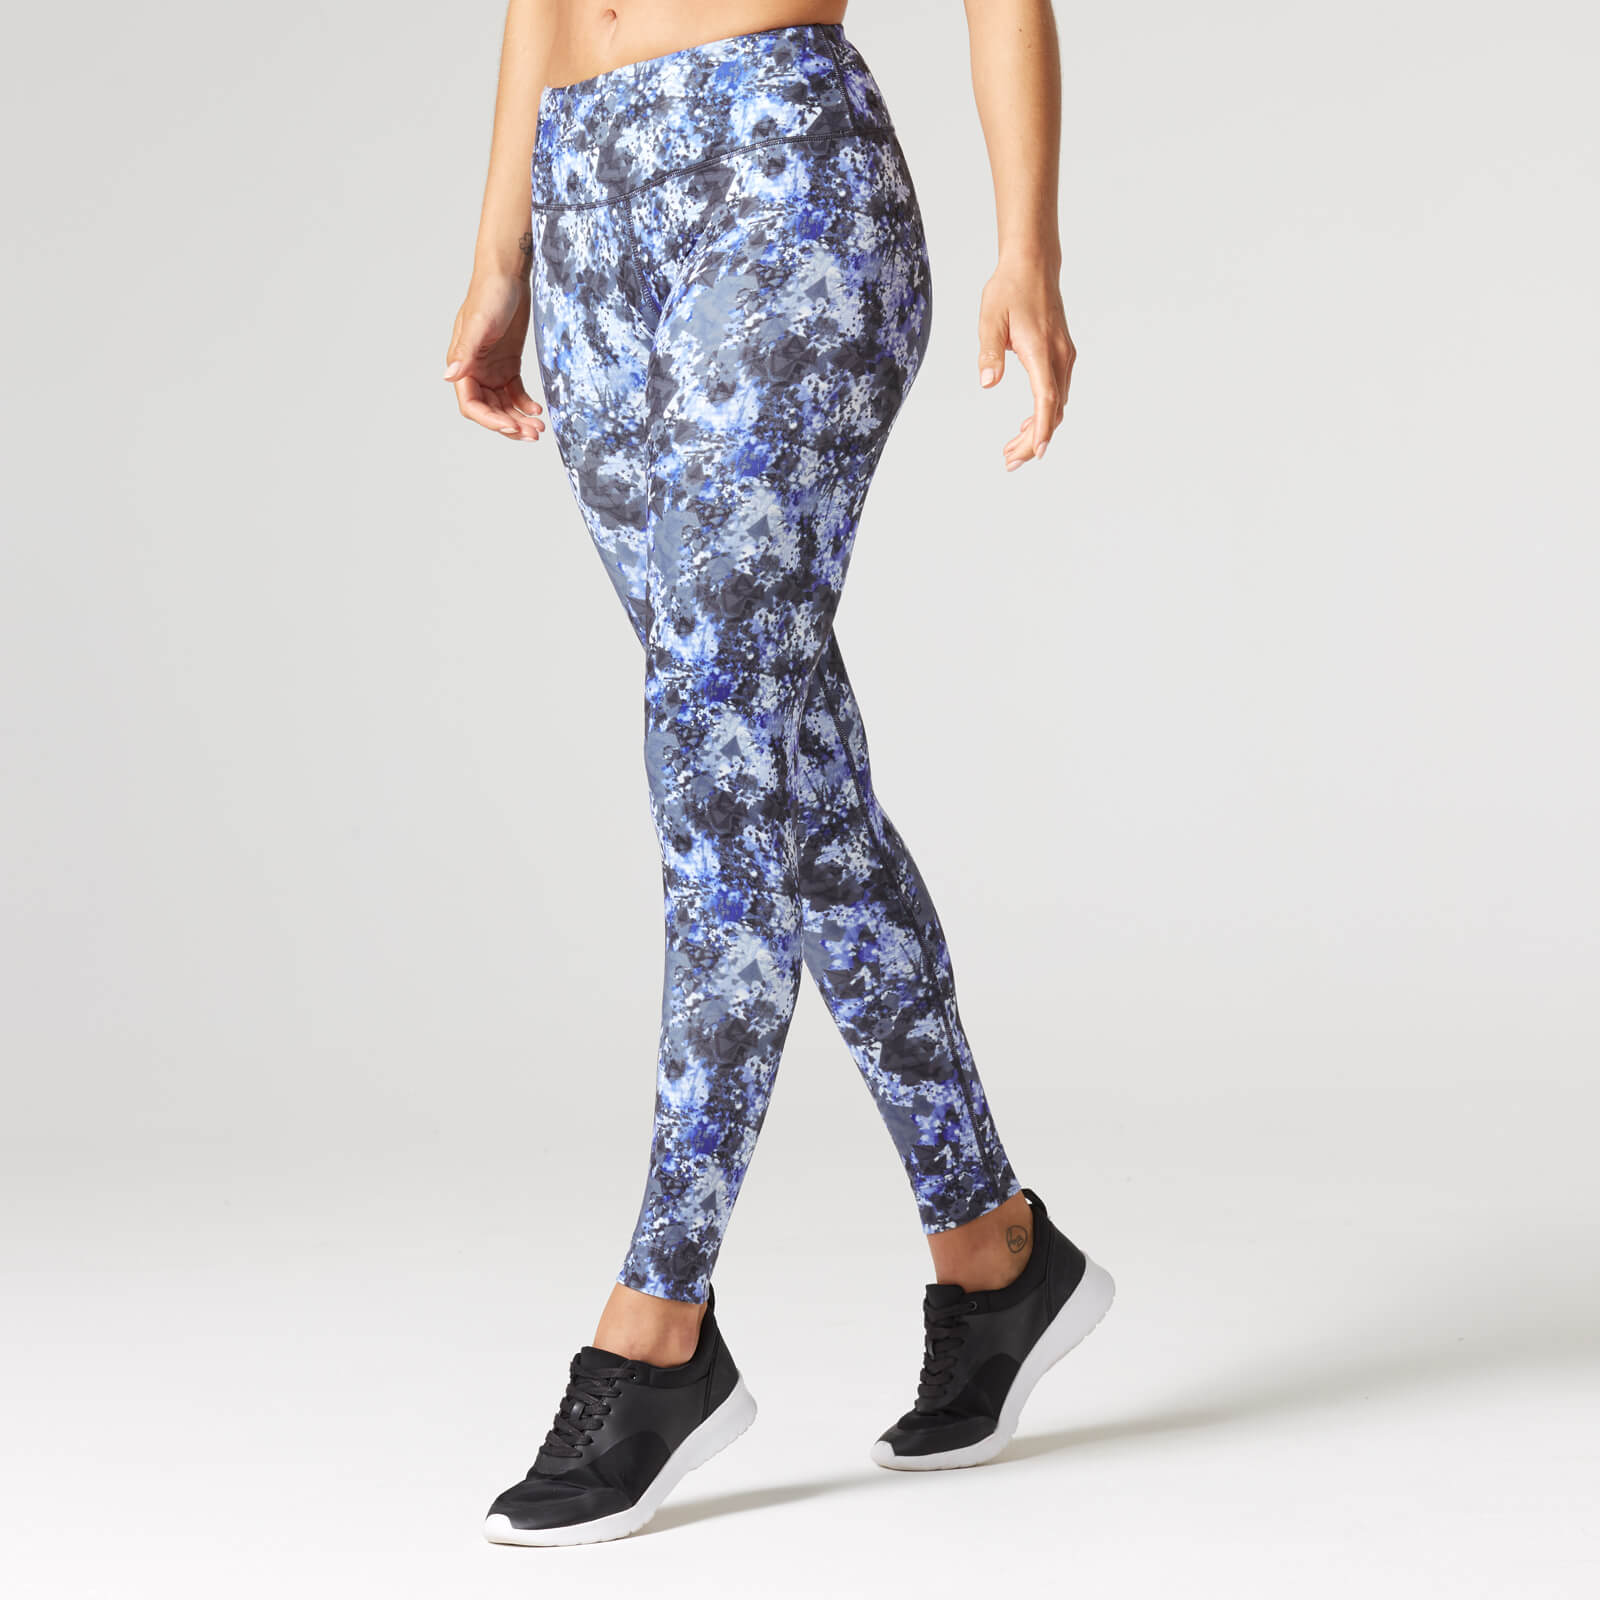 Myprotein Loud Molten Leggings - Multi - S